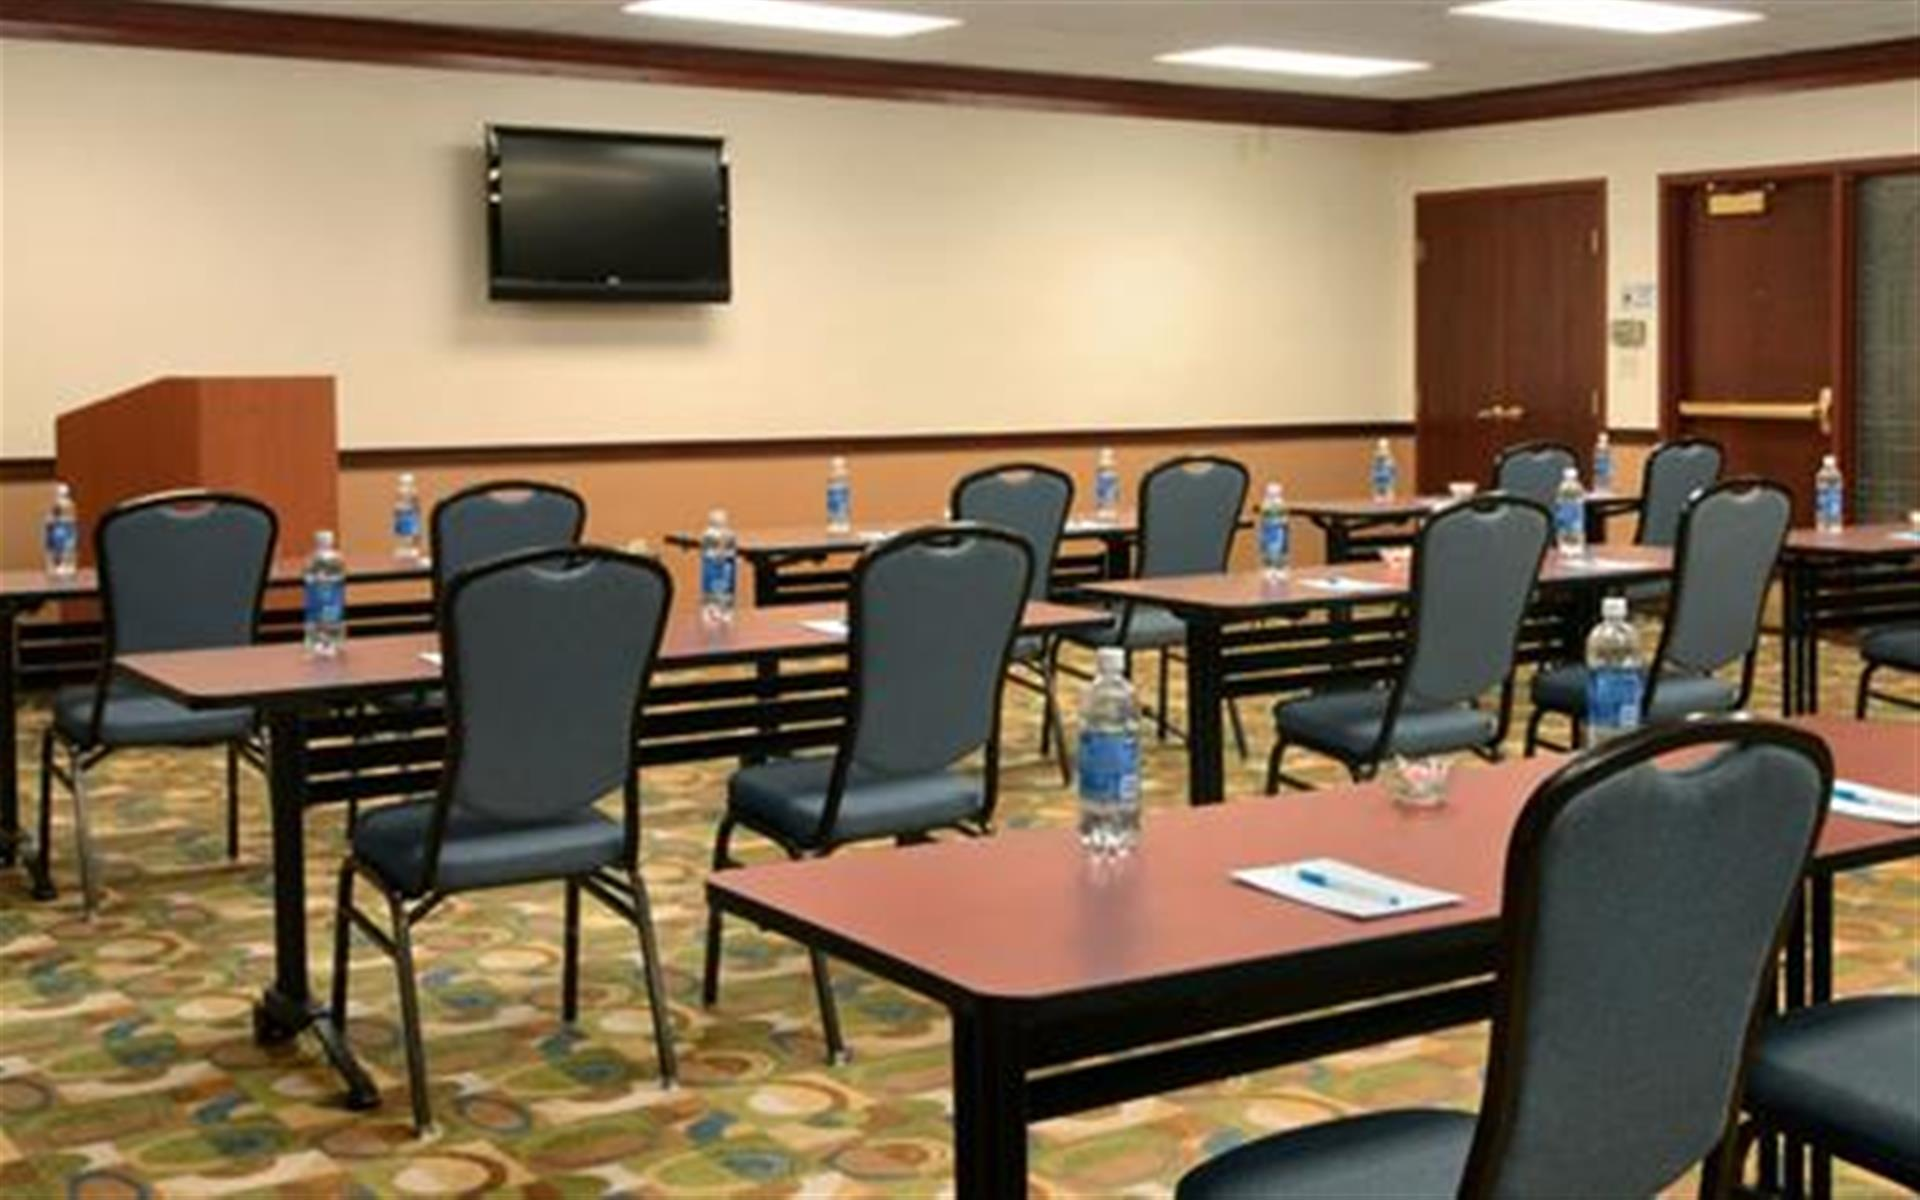 Hyatt House Morristown - The Gathering Room